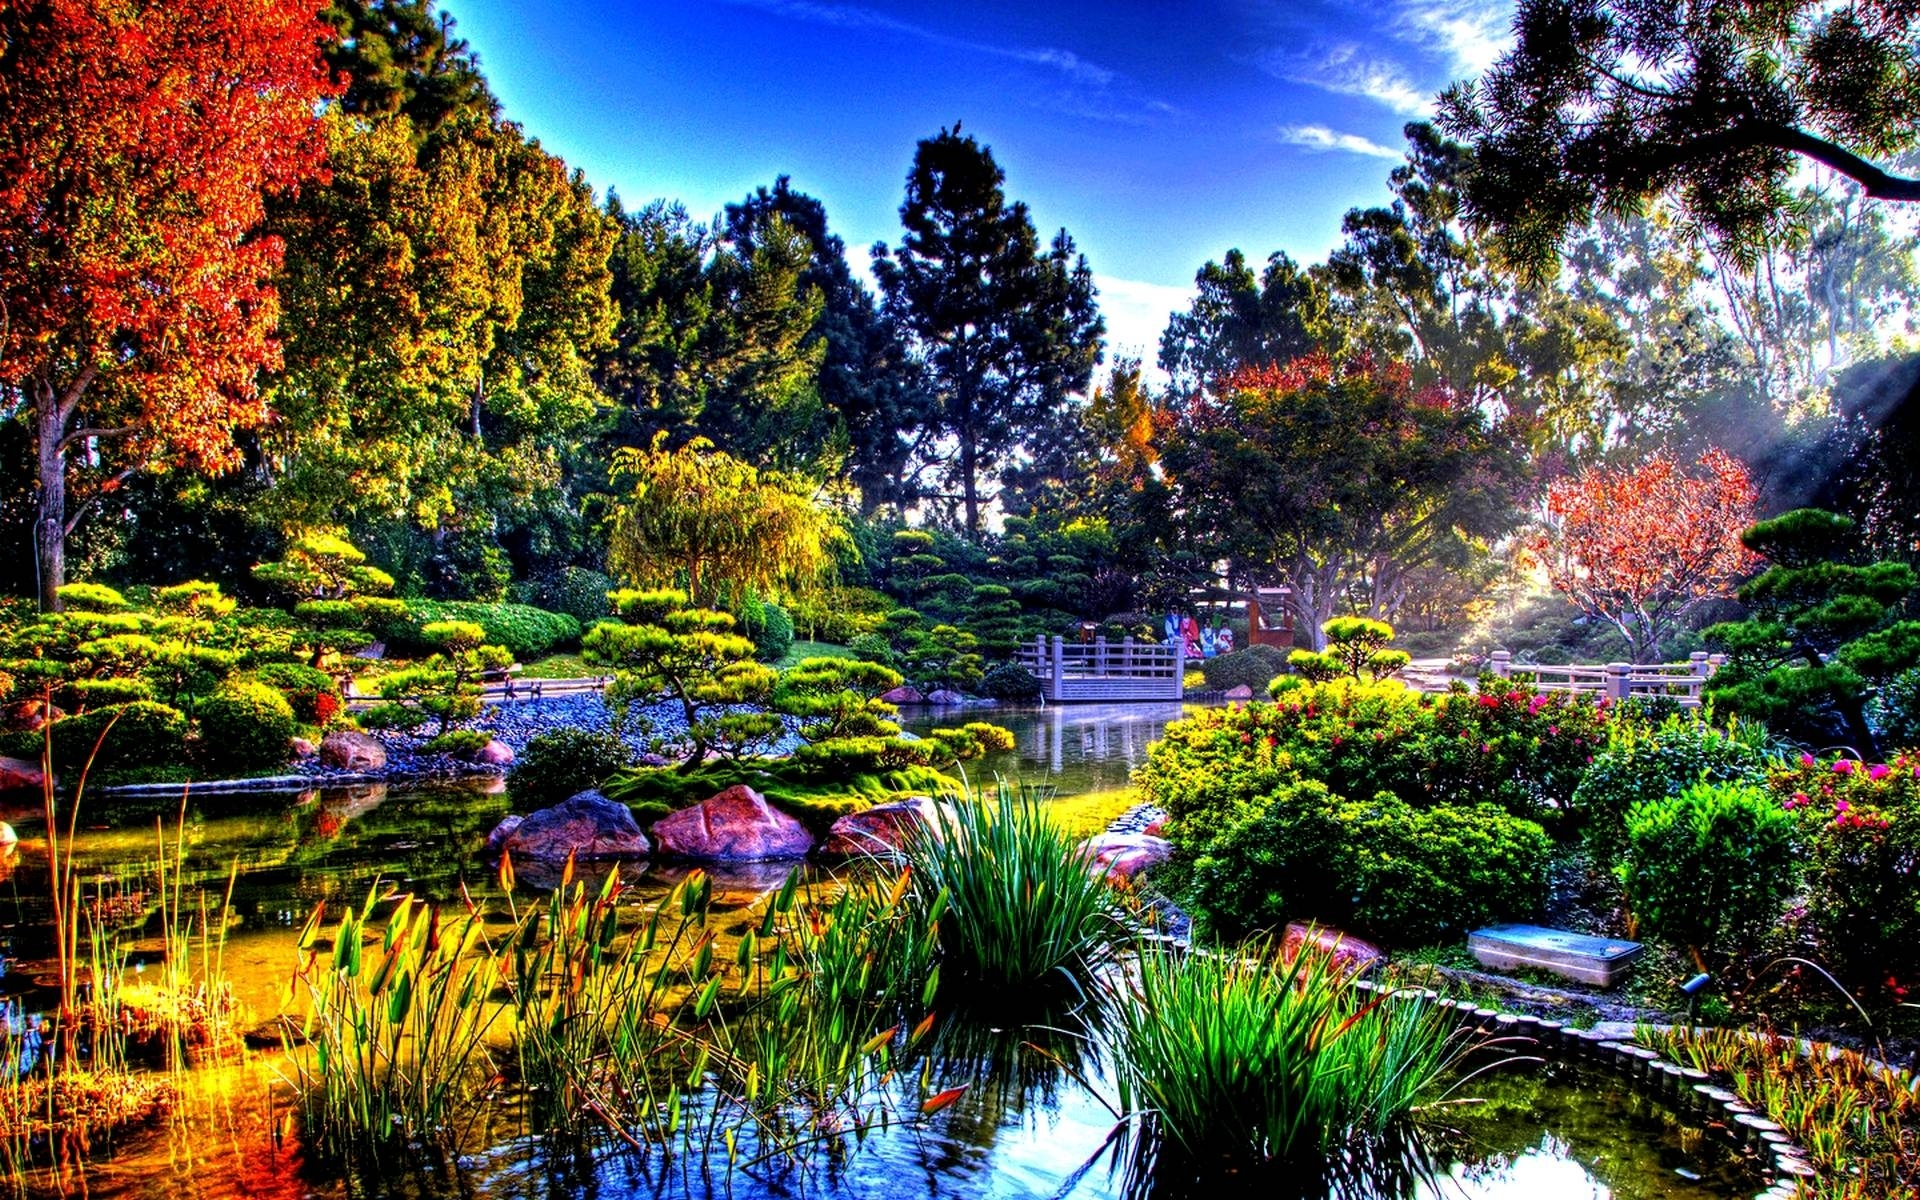 japanese garden wallpapers - wallpaper cave